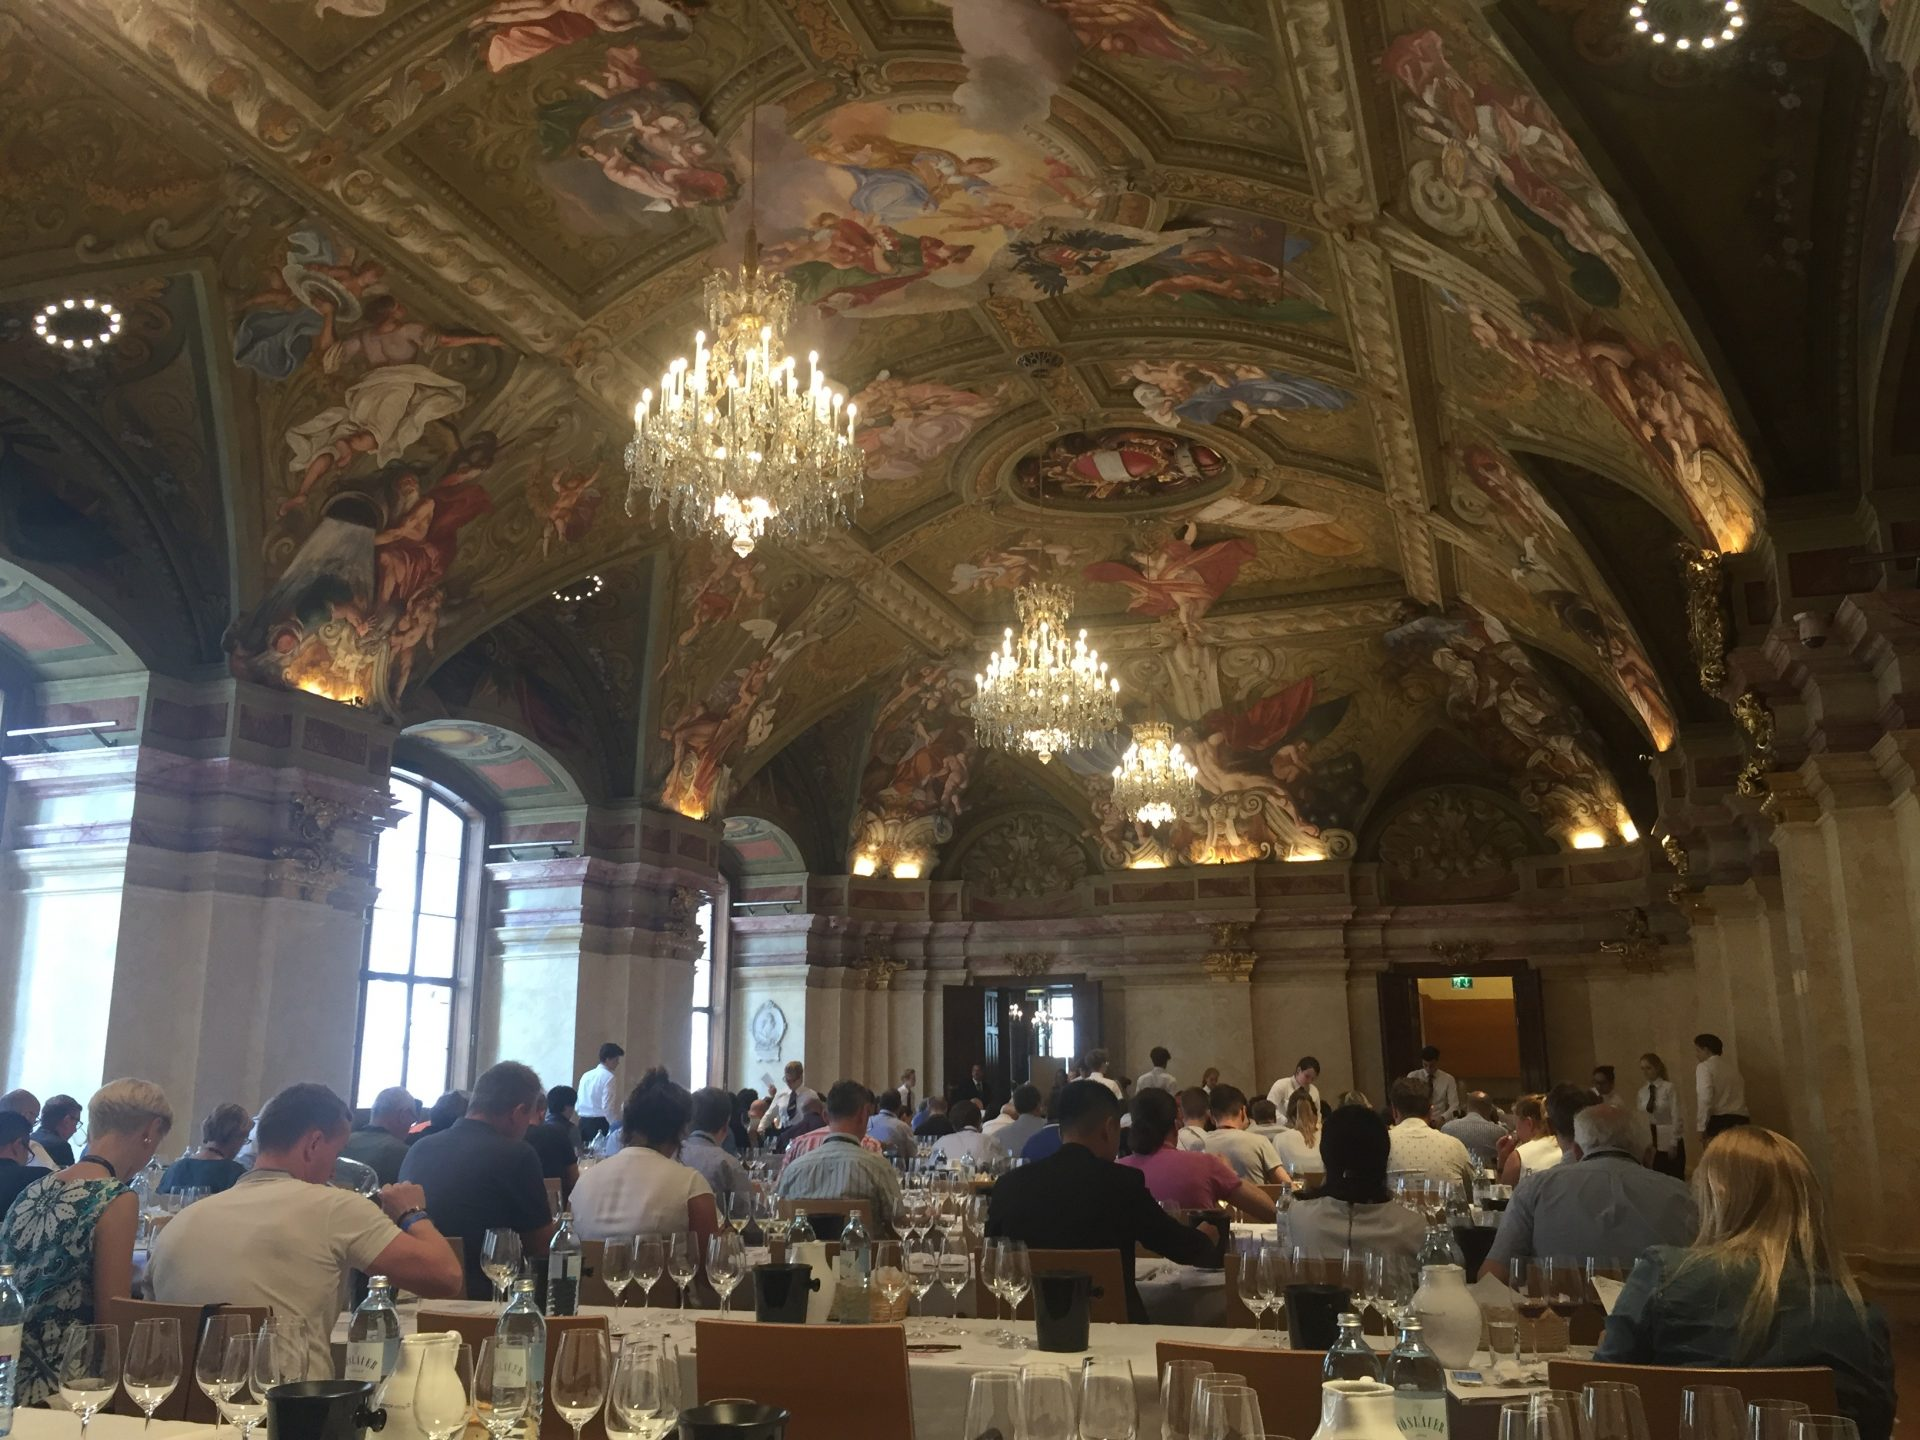 VieVinum 2018 – Set Tasting, Organised in Flights 'Great Sauvignon Blancs And Pinots', Palais Niederösterreich, Vienna.